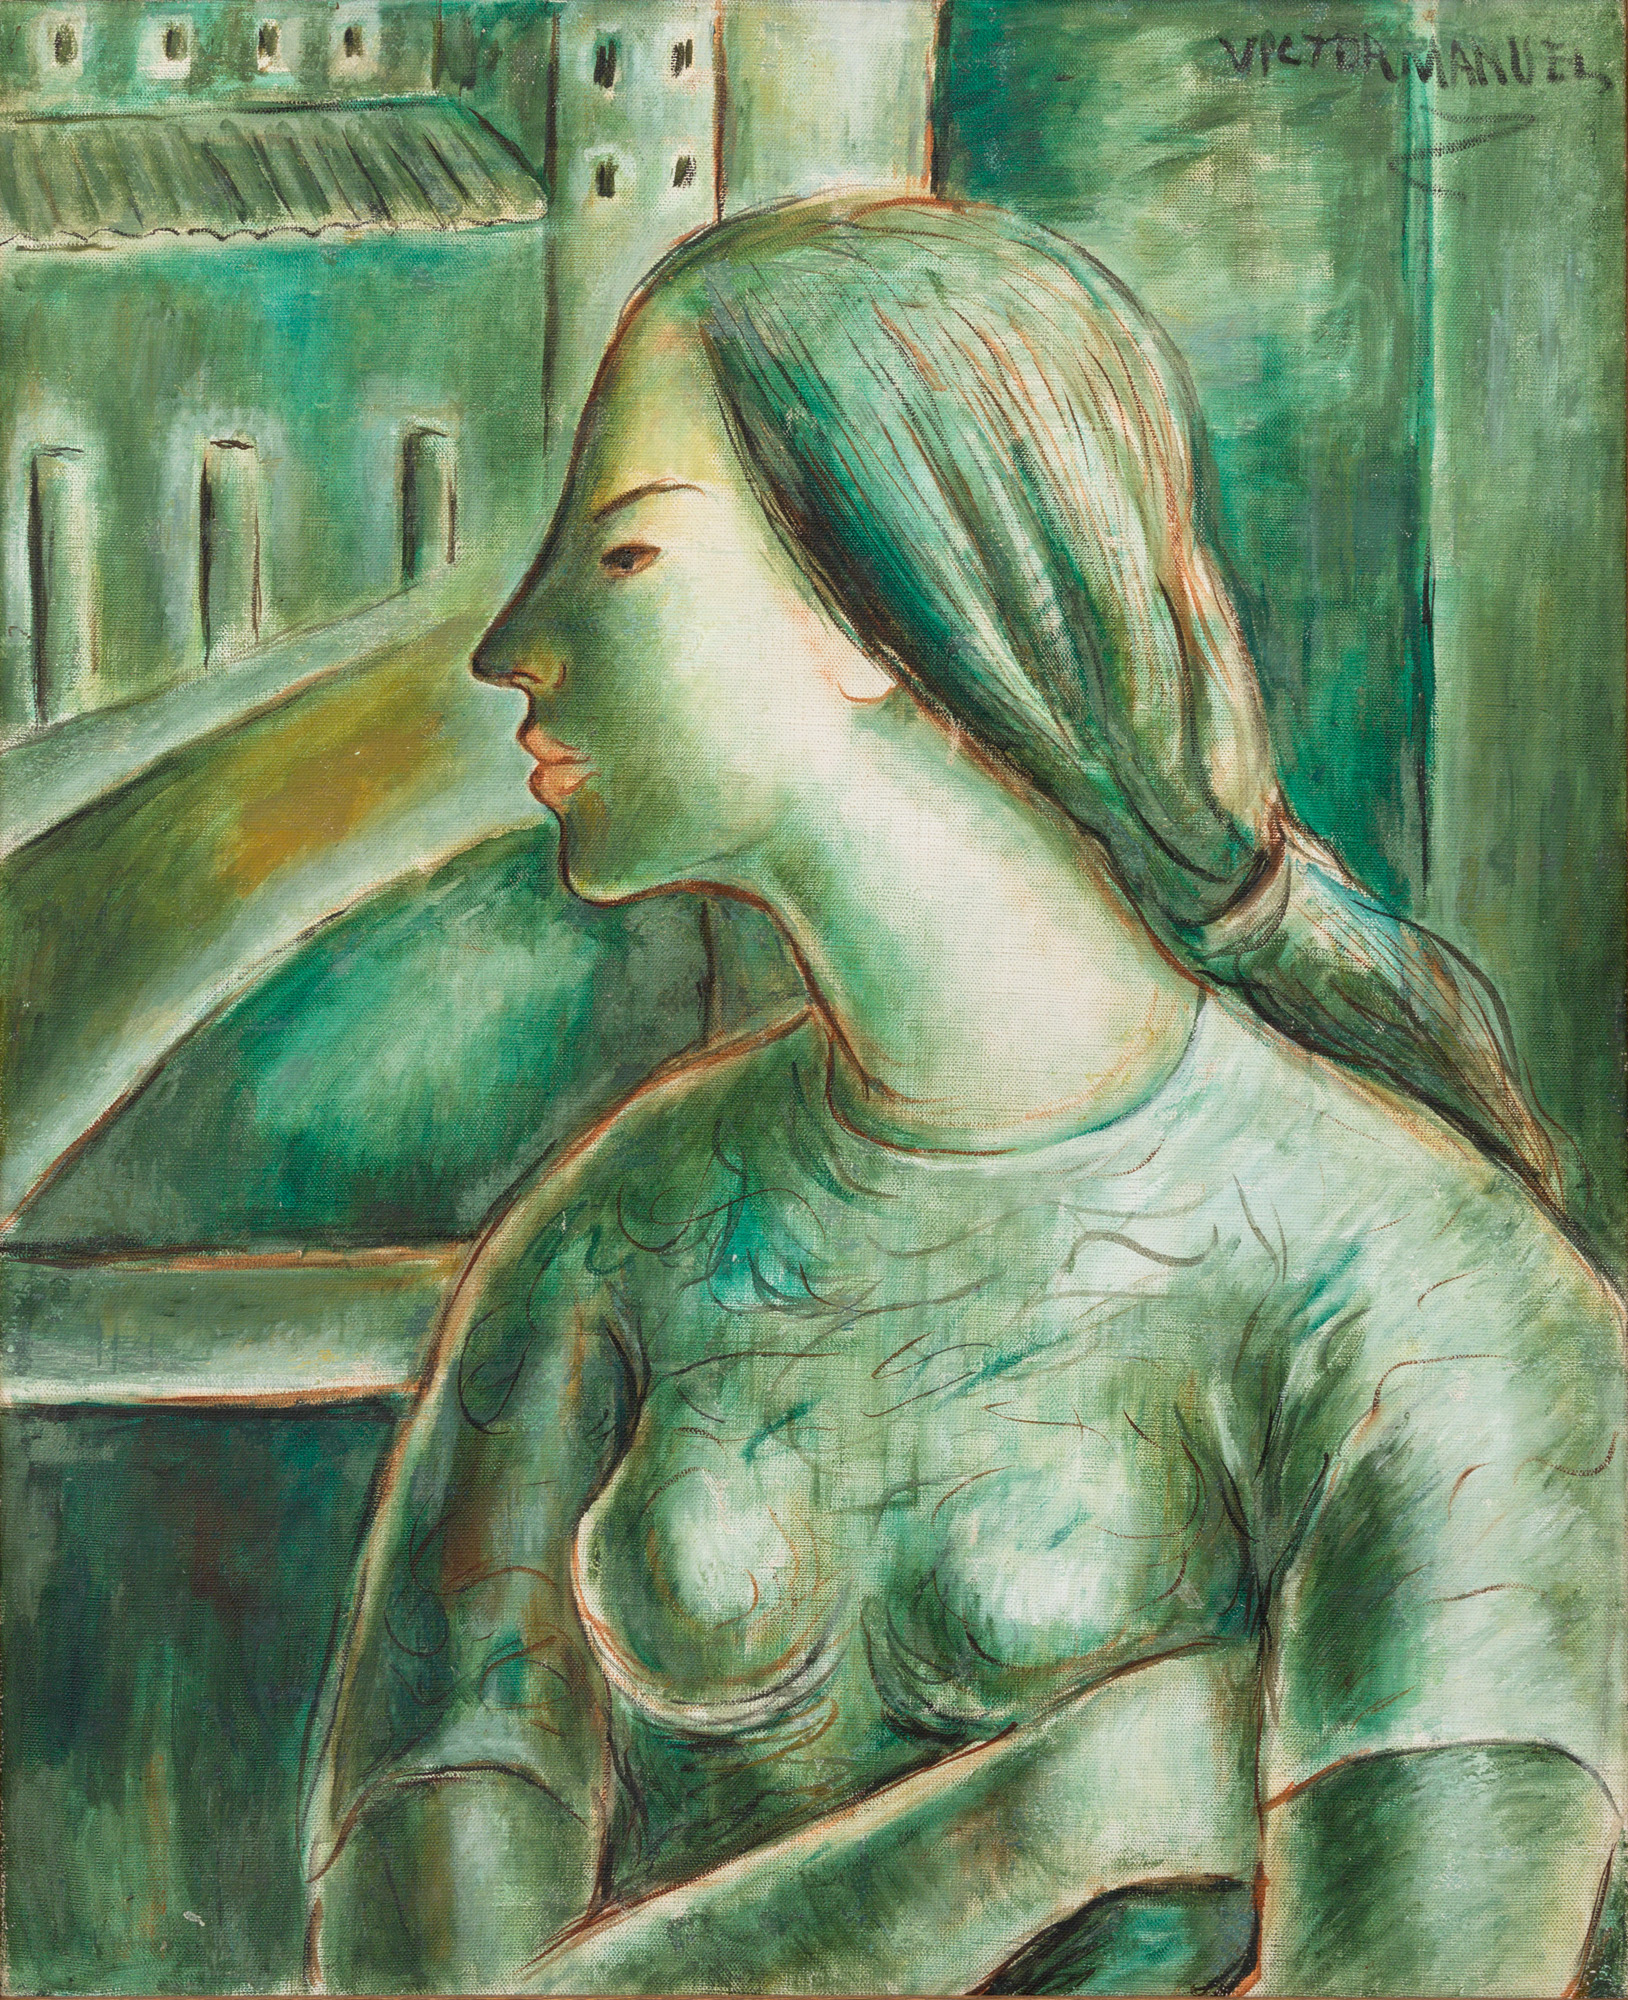 Muchacha en verde (Young Lady in Green), 1958. Oil on linen. Framed: 36 1/2 x 32 x 2 in.